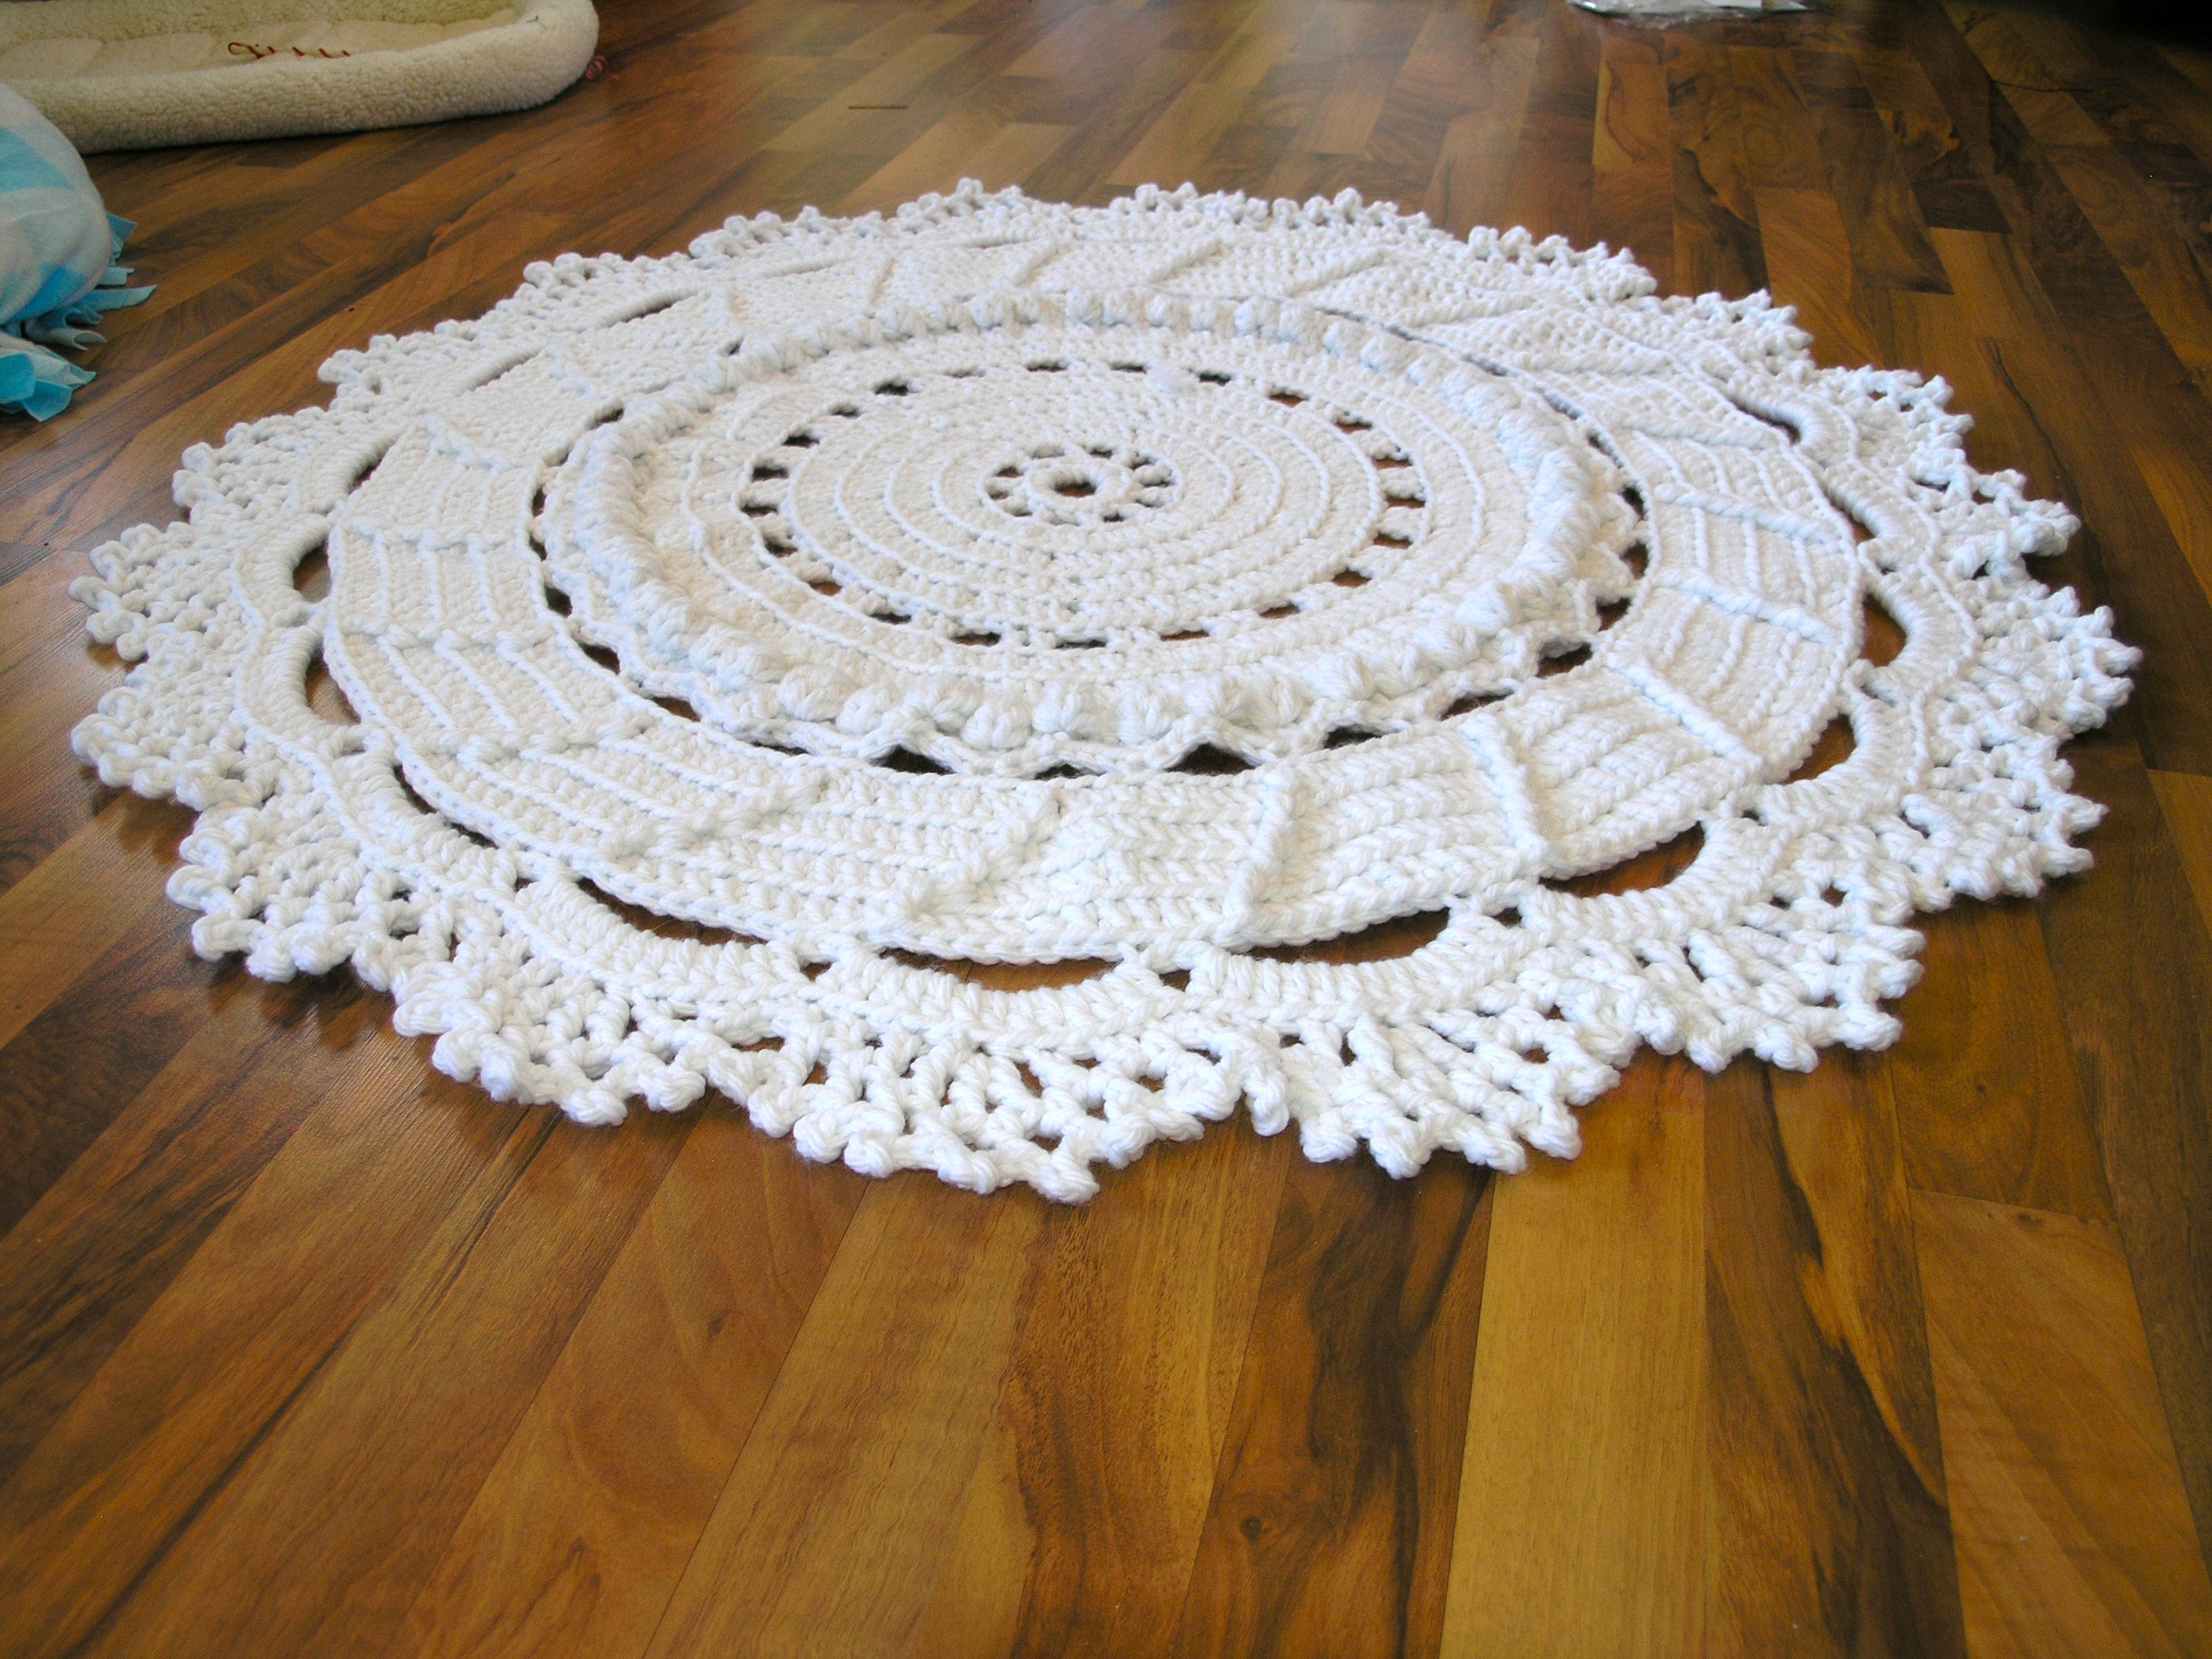 Crochet Rug Awesome Dances with Wools Blog Archive A Giant Crochet Doily Of Top 44 Photos Crochet Rug